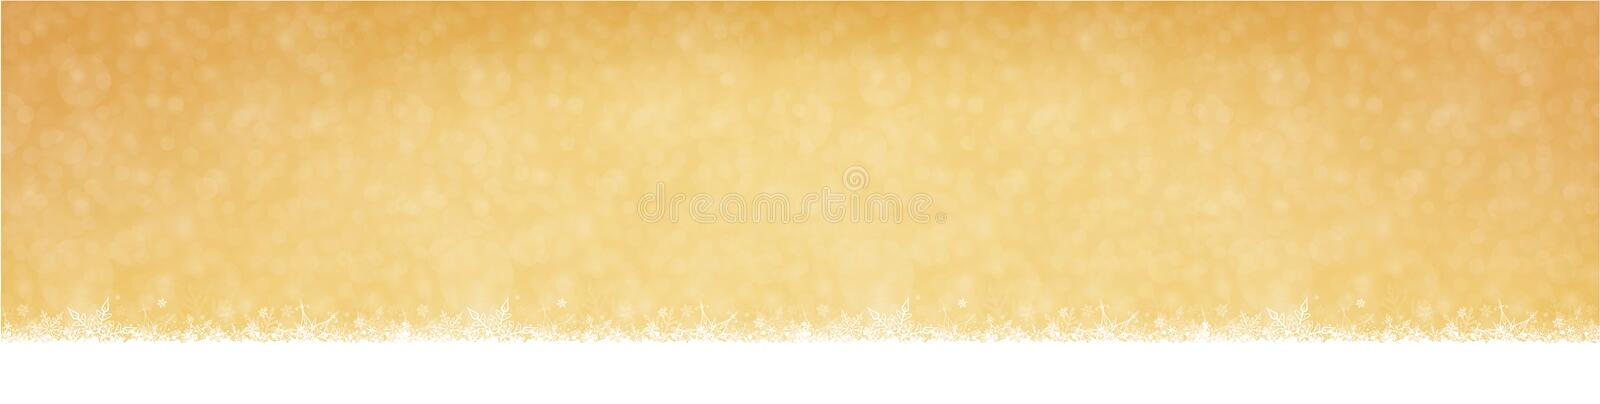 Snowfall Christmas and New Year Winter Golden Background stock illustration